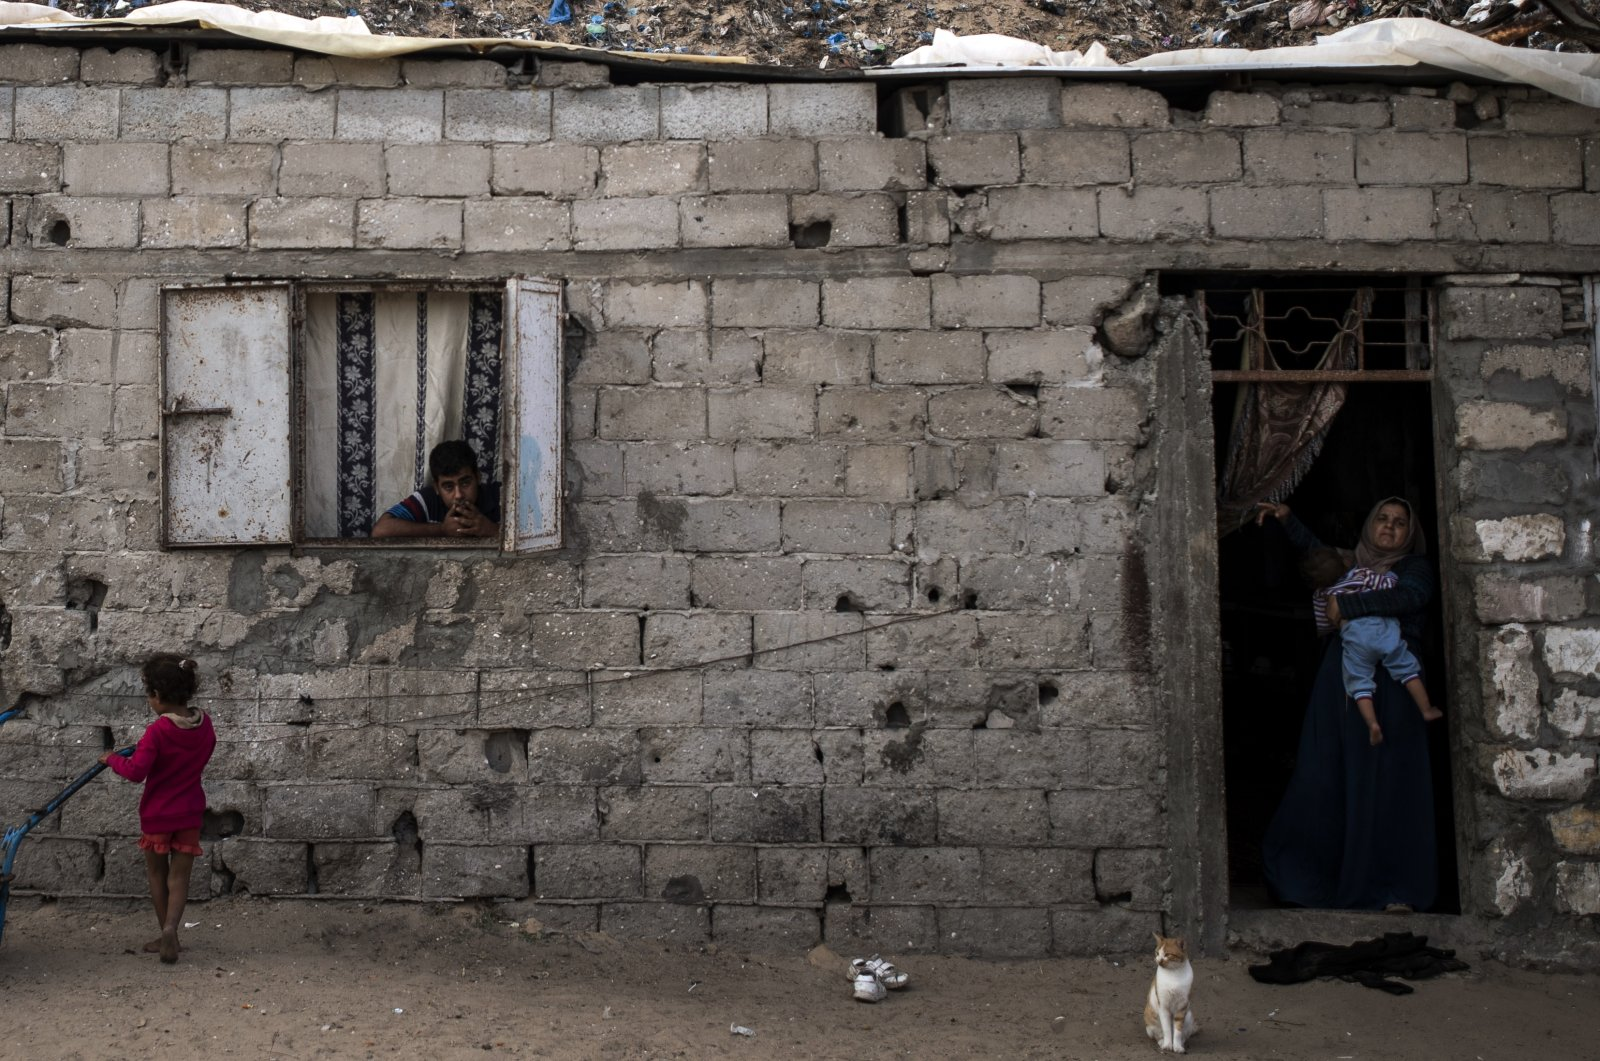 Palestinians are seen looking on from their house in a slum on the outskirts of Khan Younis Refugee Camp, in the southern Gaza Strip, Nov. 25, 2020. (AP Photo)